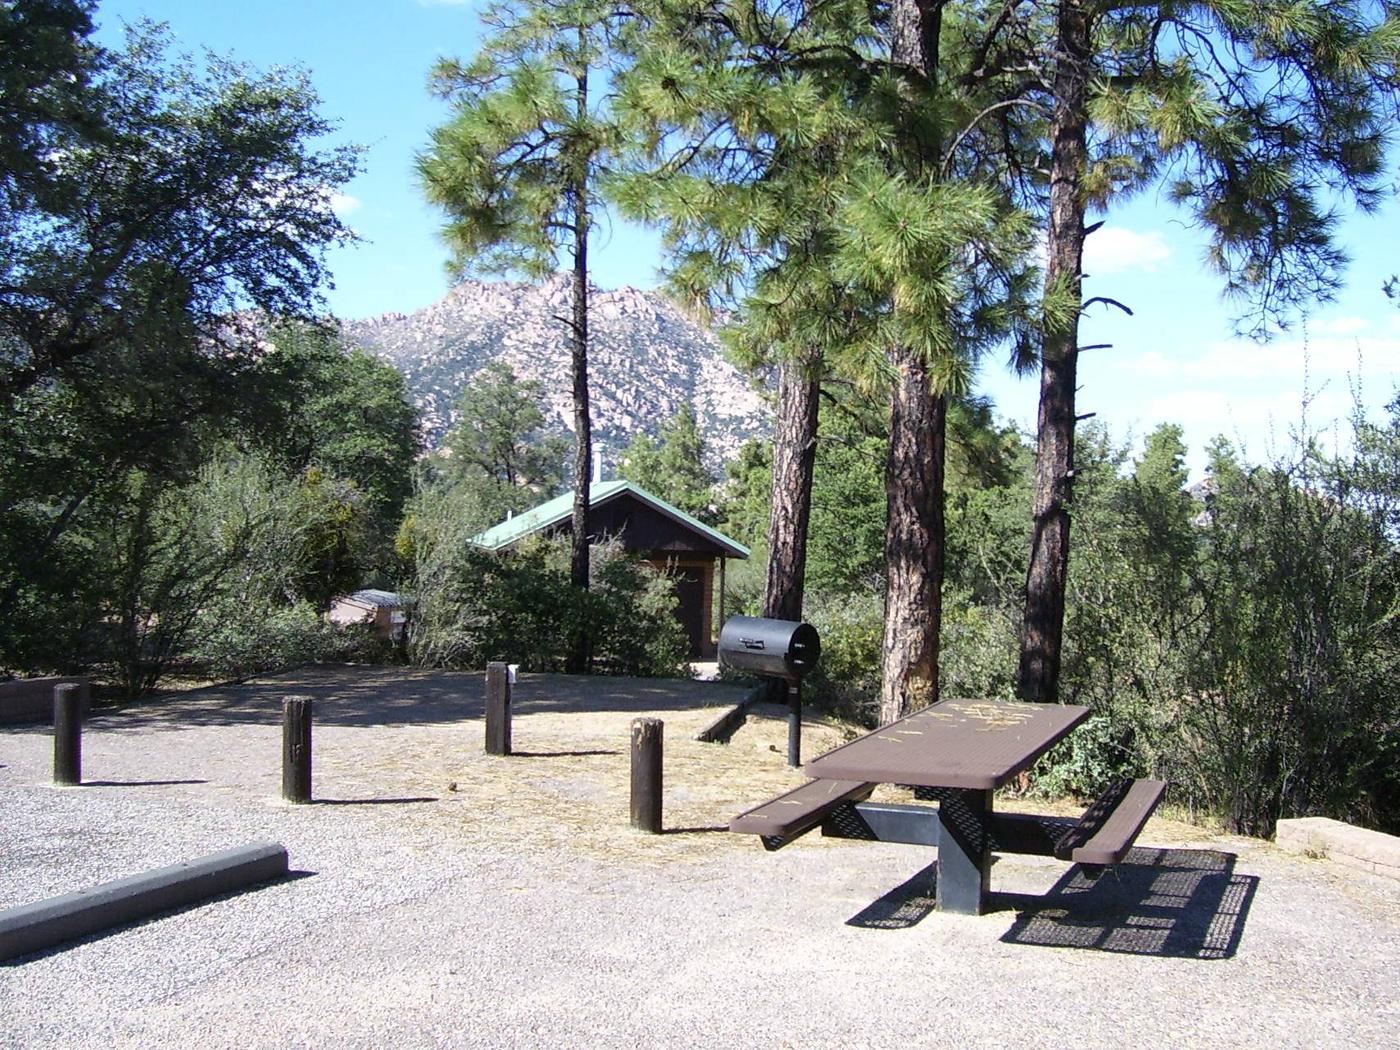 Yavapai Campground Site 6 shares parking with Site 7. Table, ballards separating parking, camping and grill area with toilet and Granite Mountain in background. Shade over tent area. Yavapai Campground Site #6